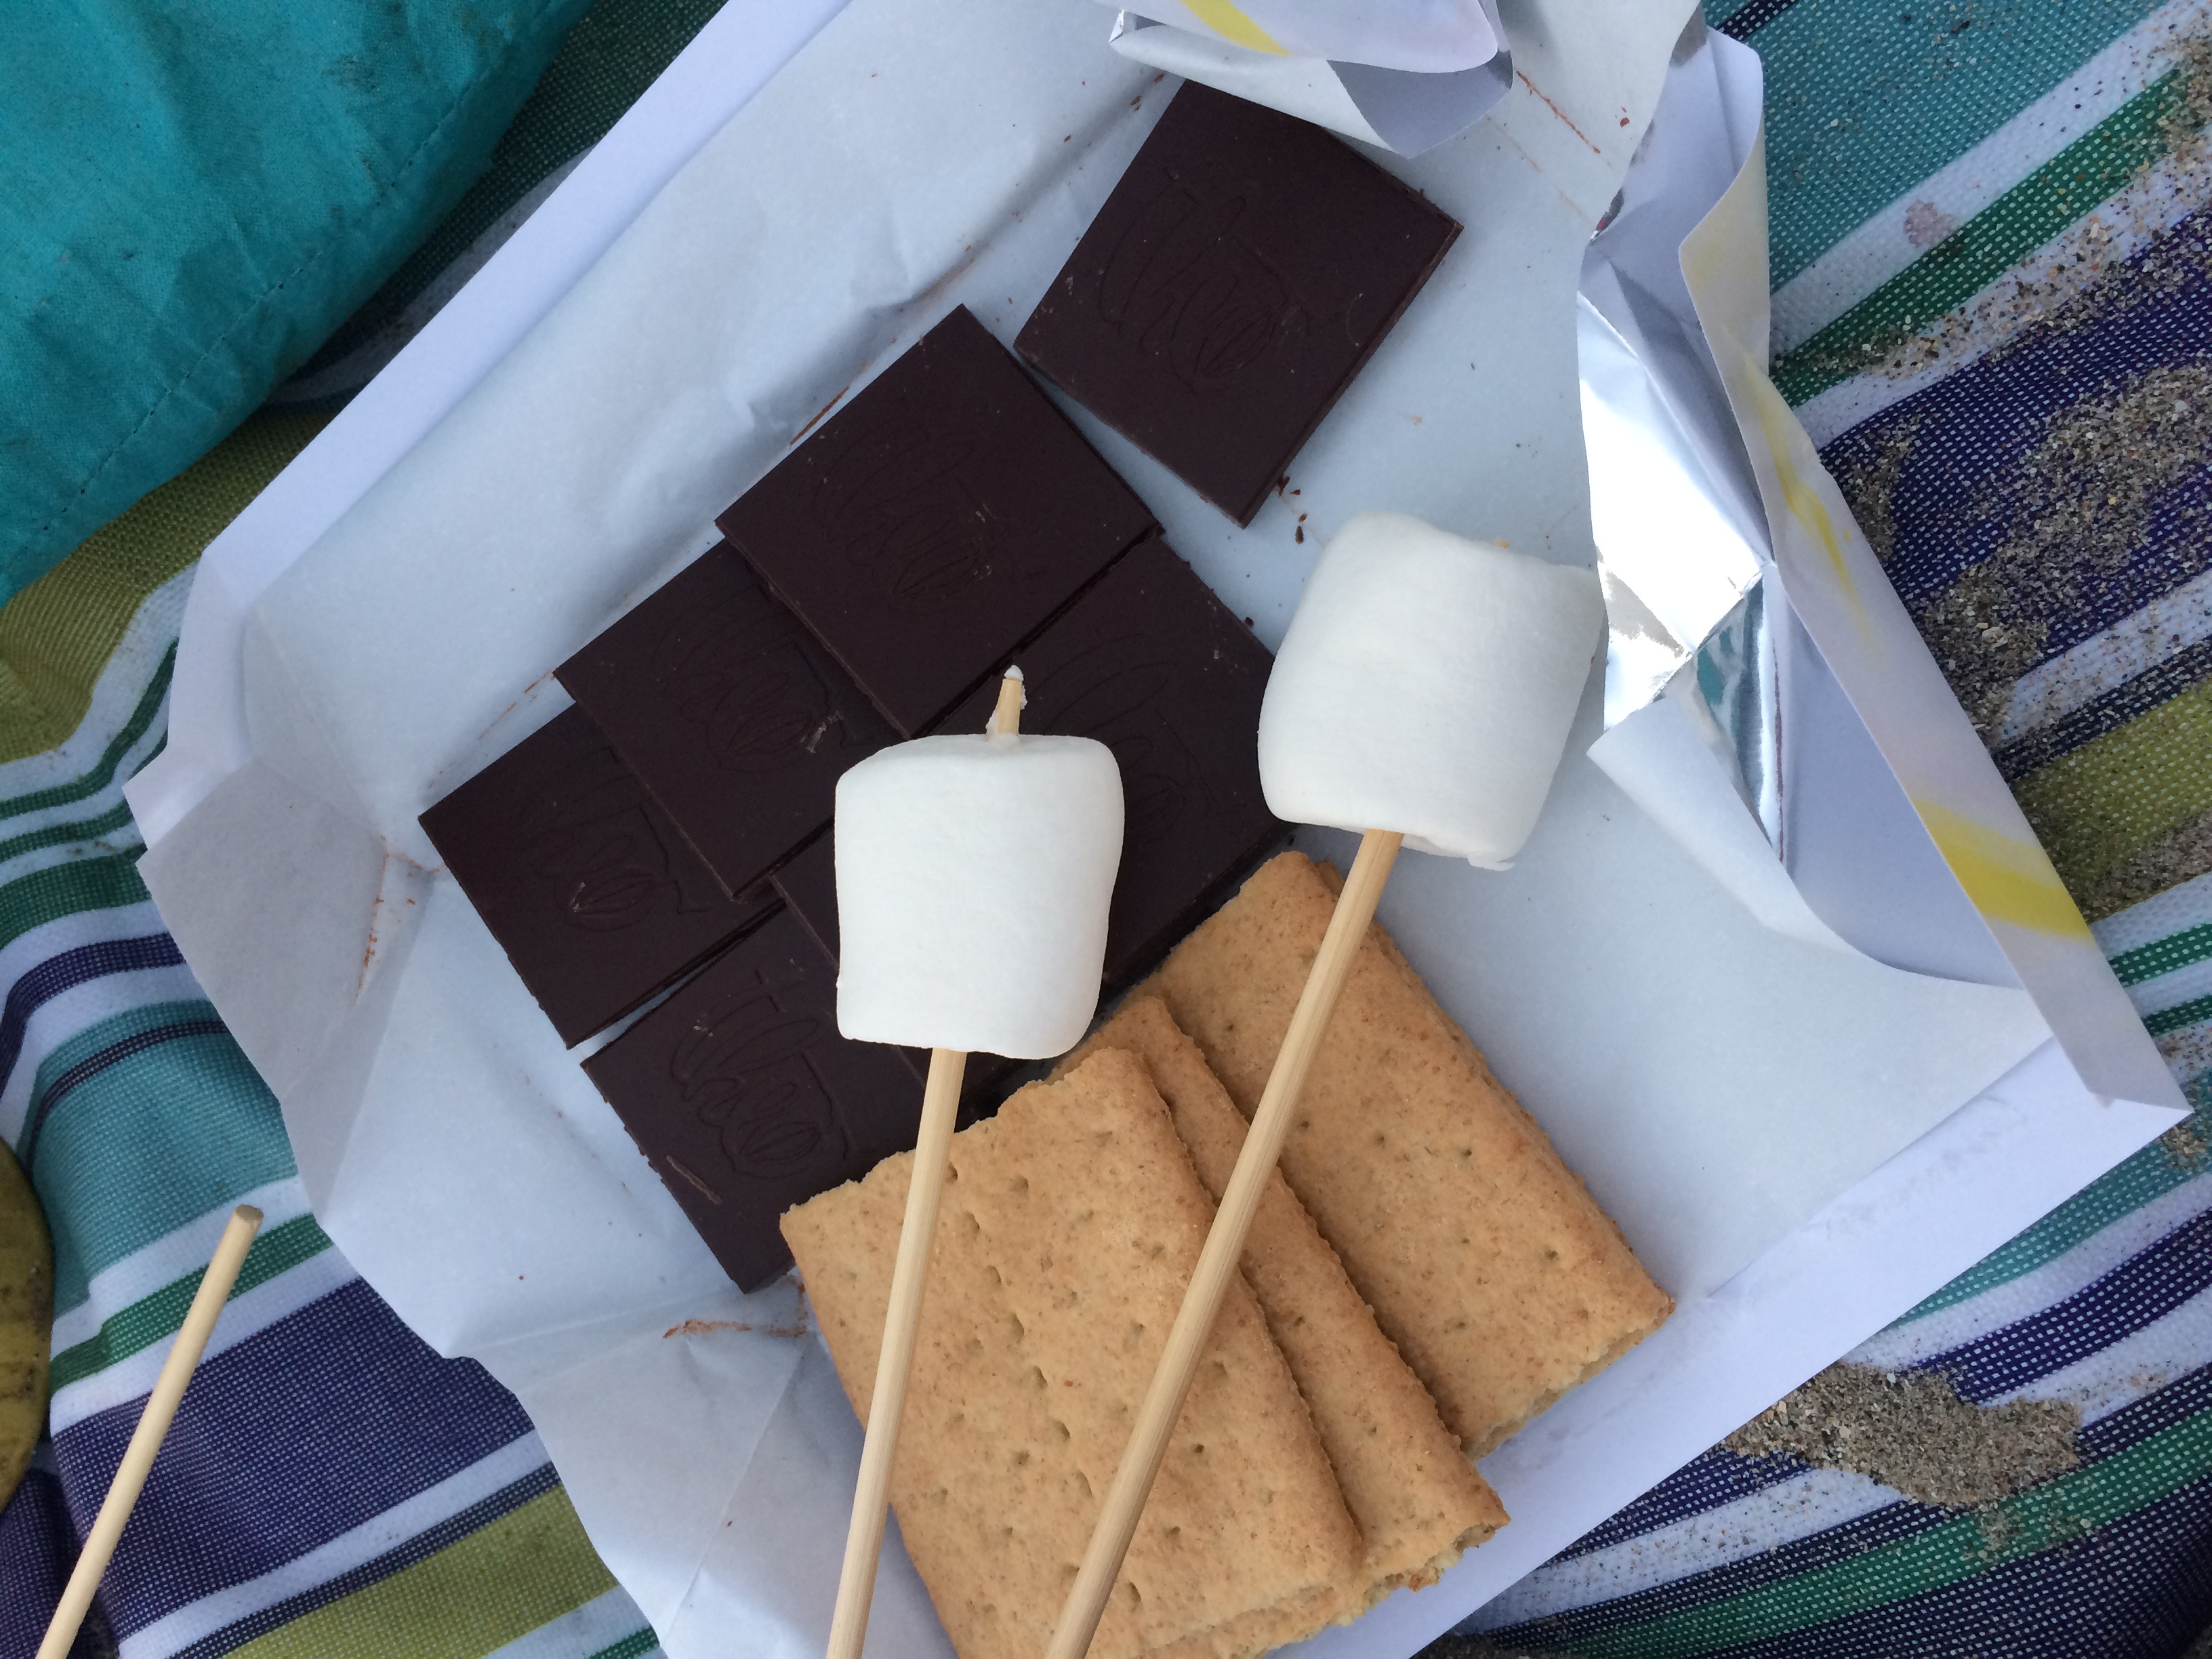 Sunset S'mores at Olde Port Beach